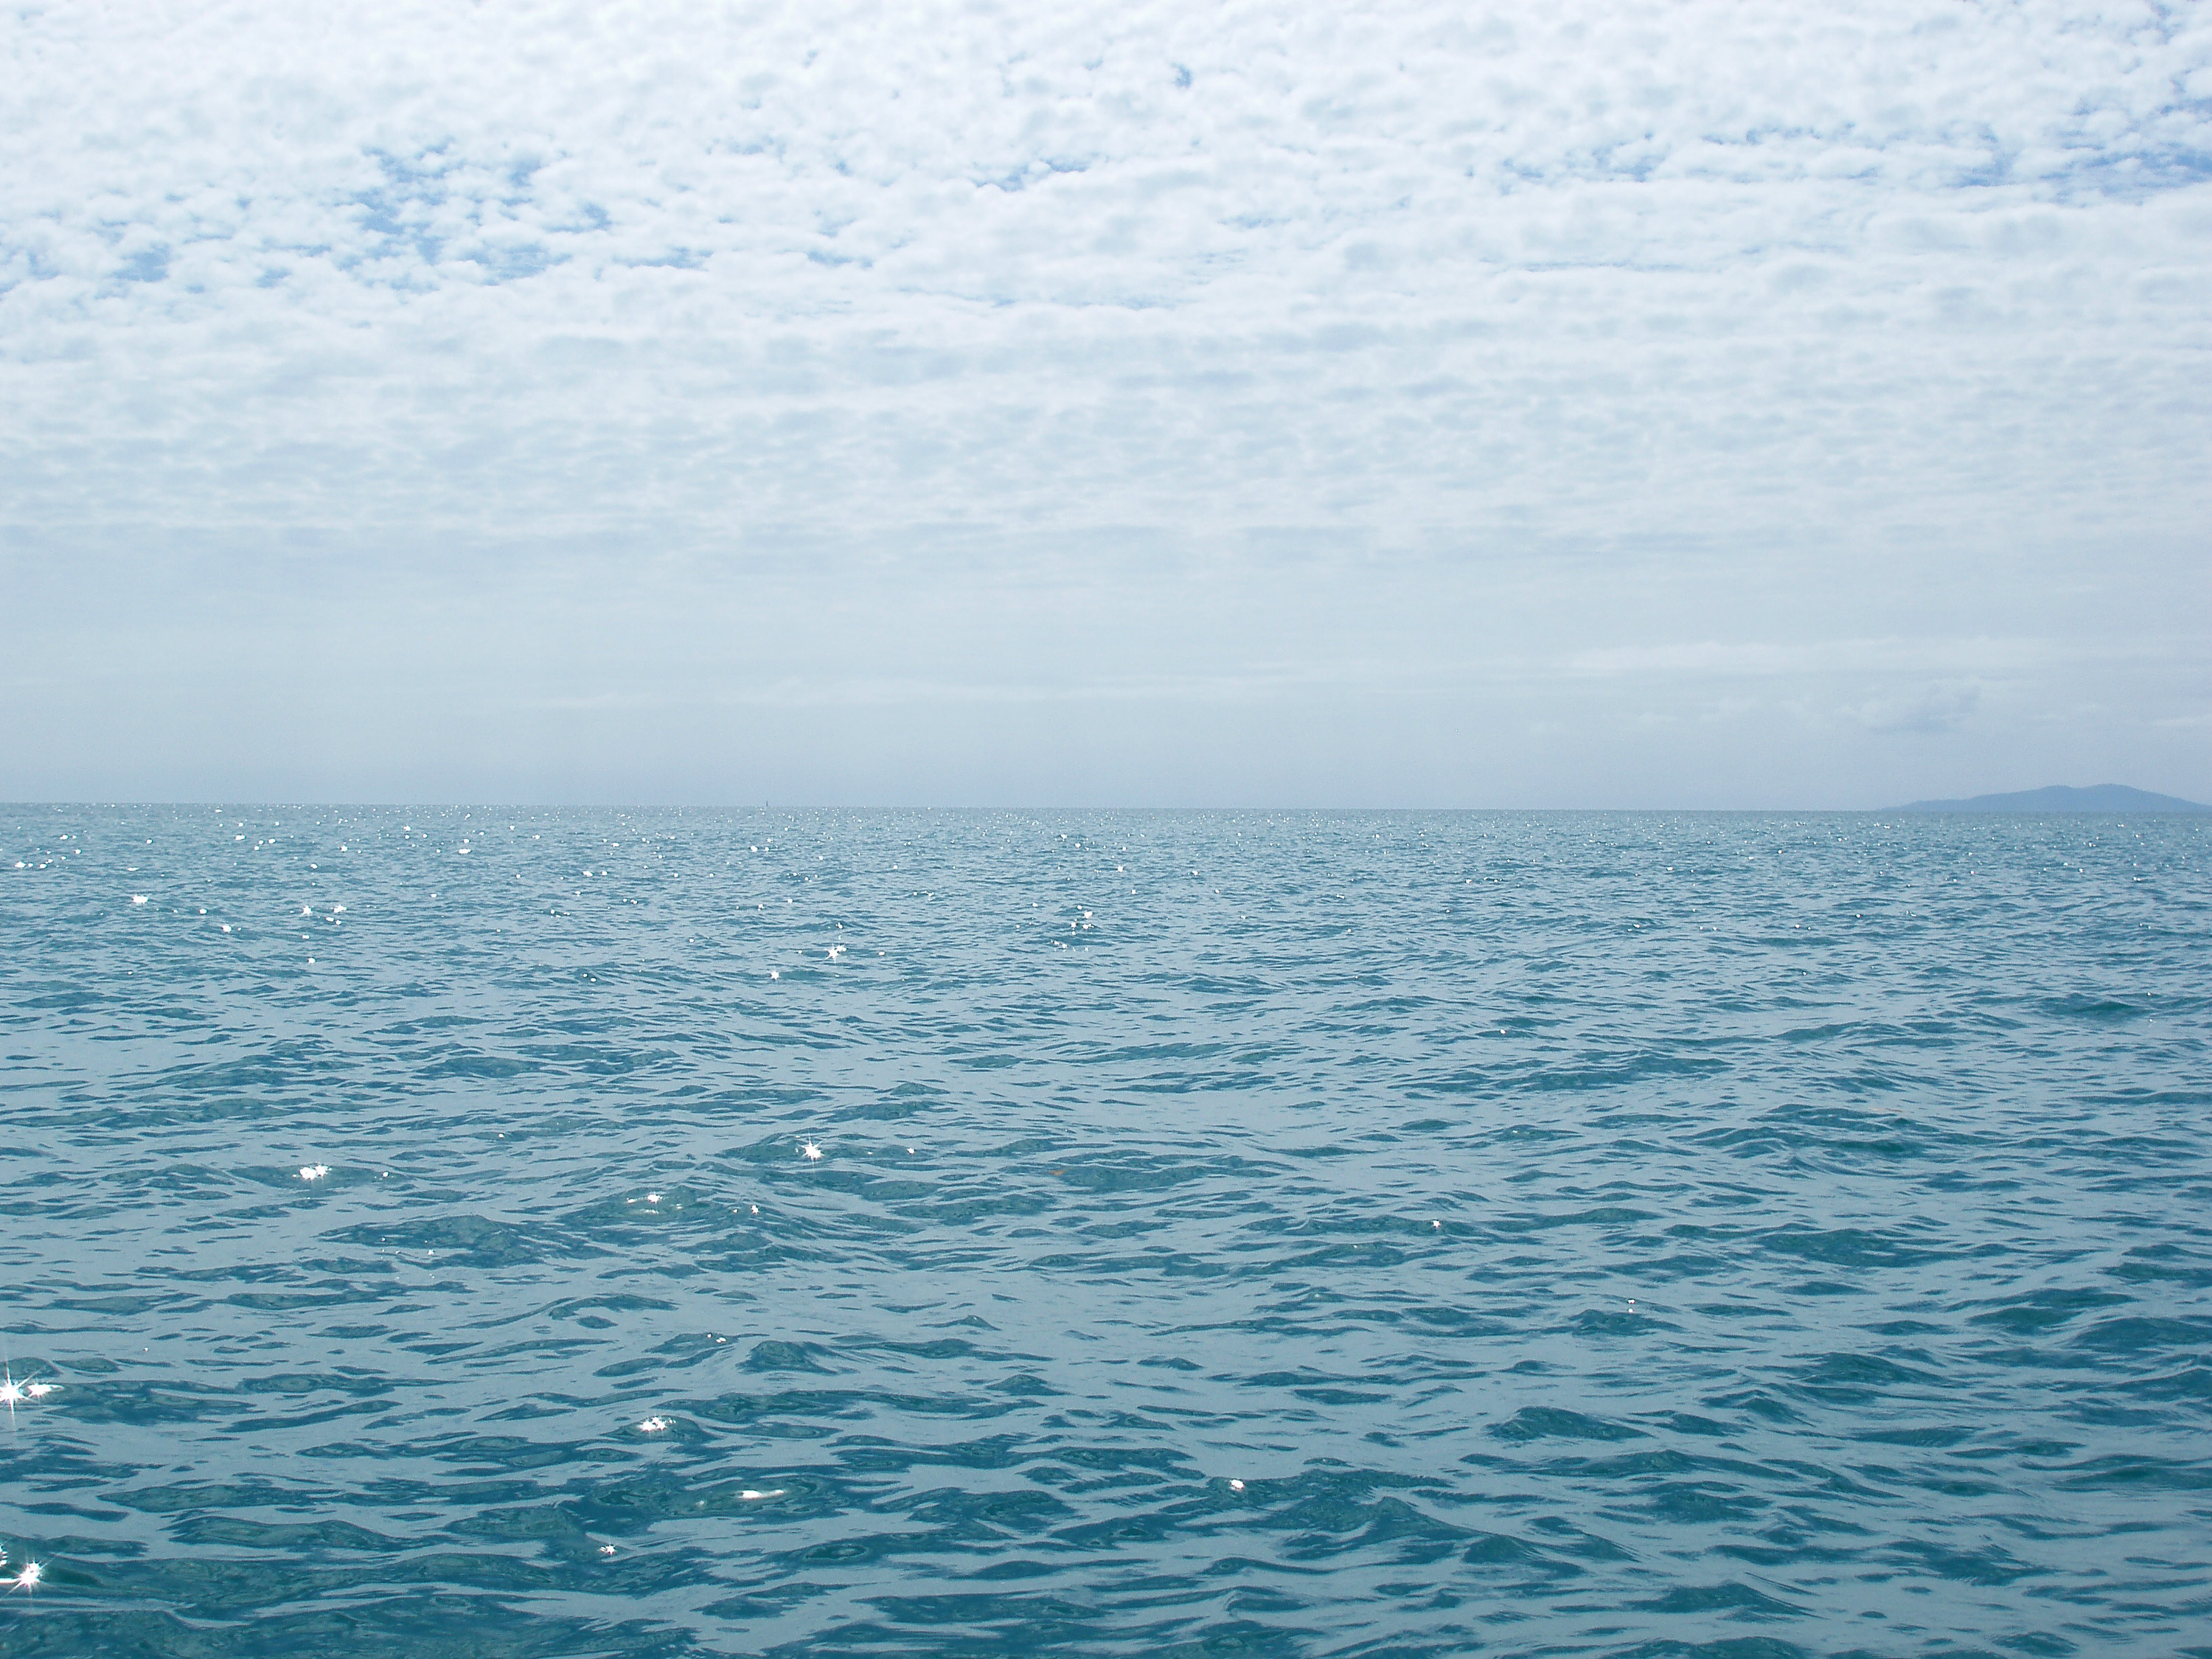 looking out at ripples on a calm ocean